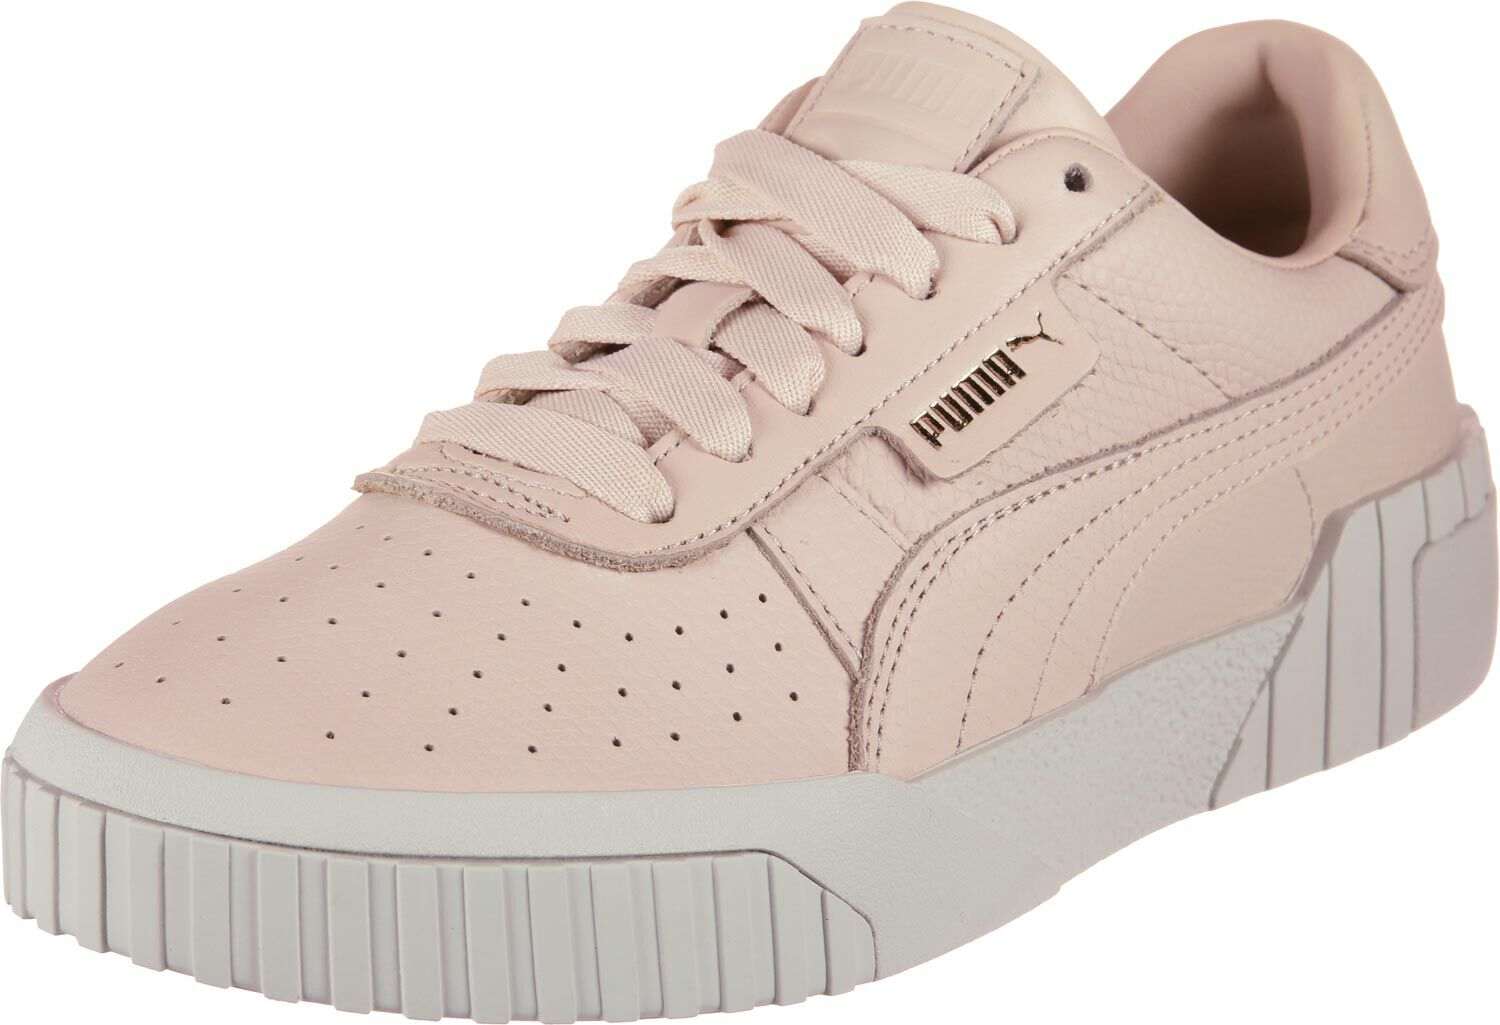 Puma Cali W - Sneakers Low at Stylefile